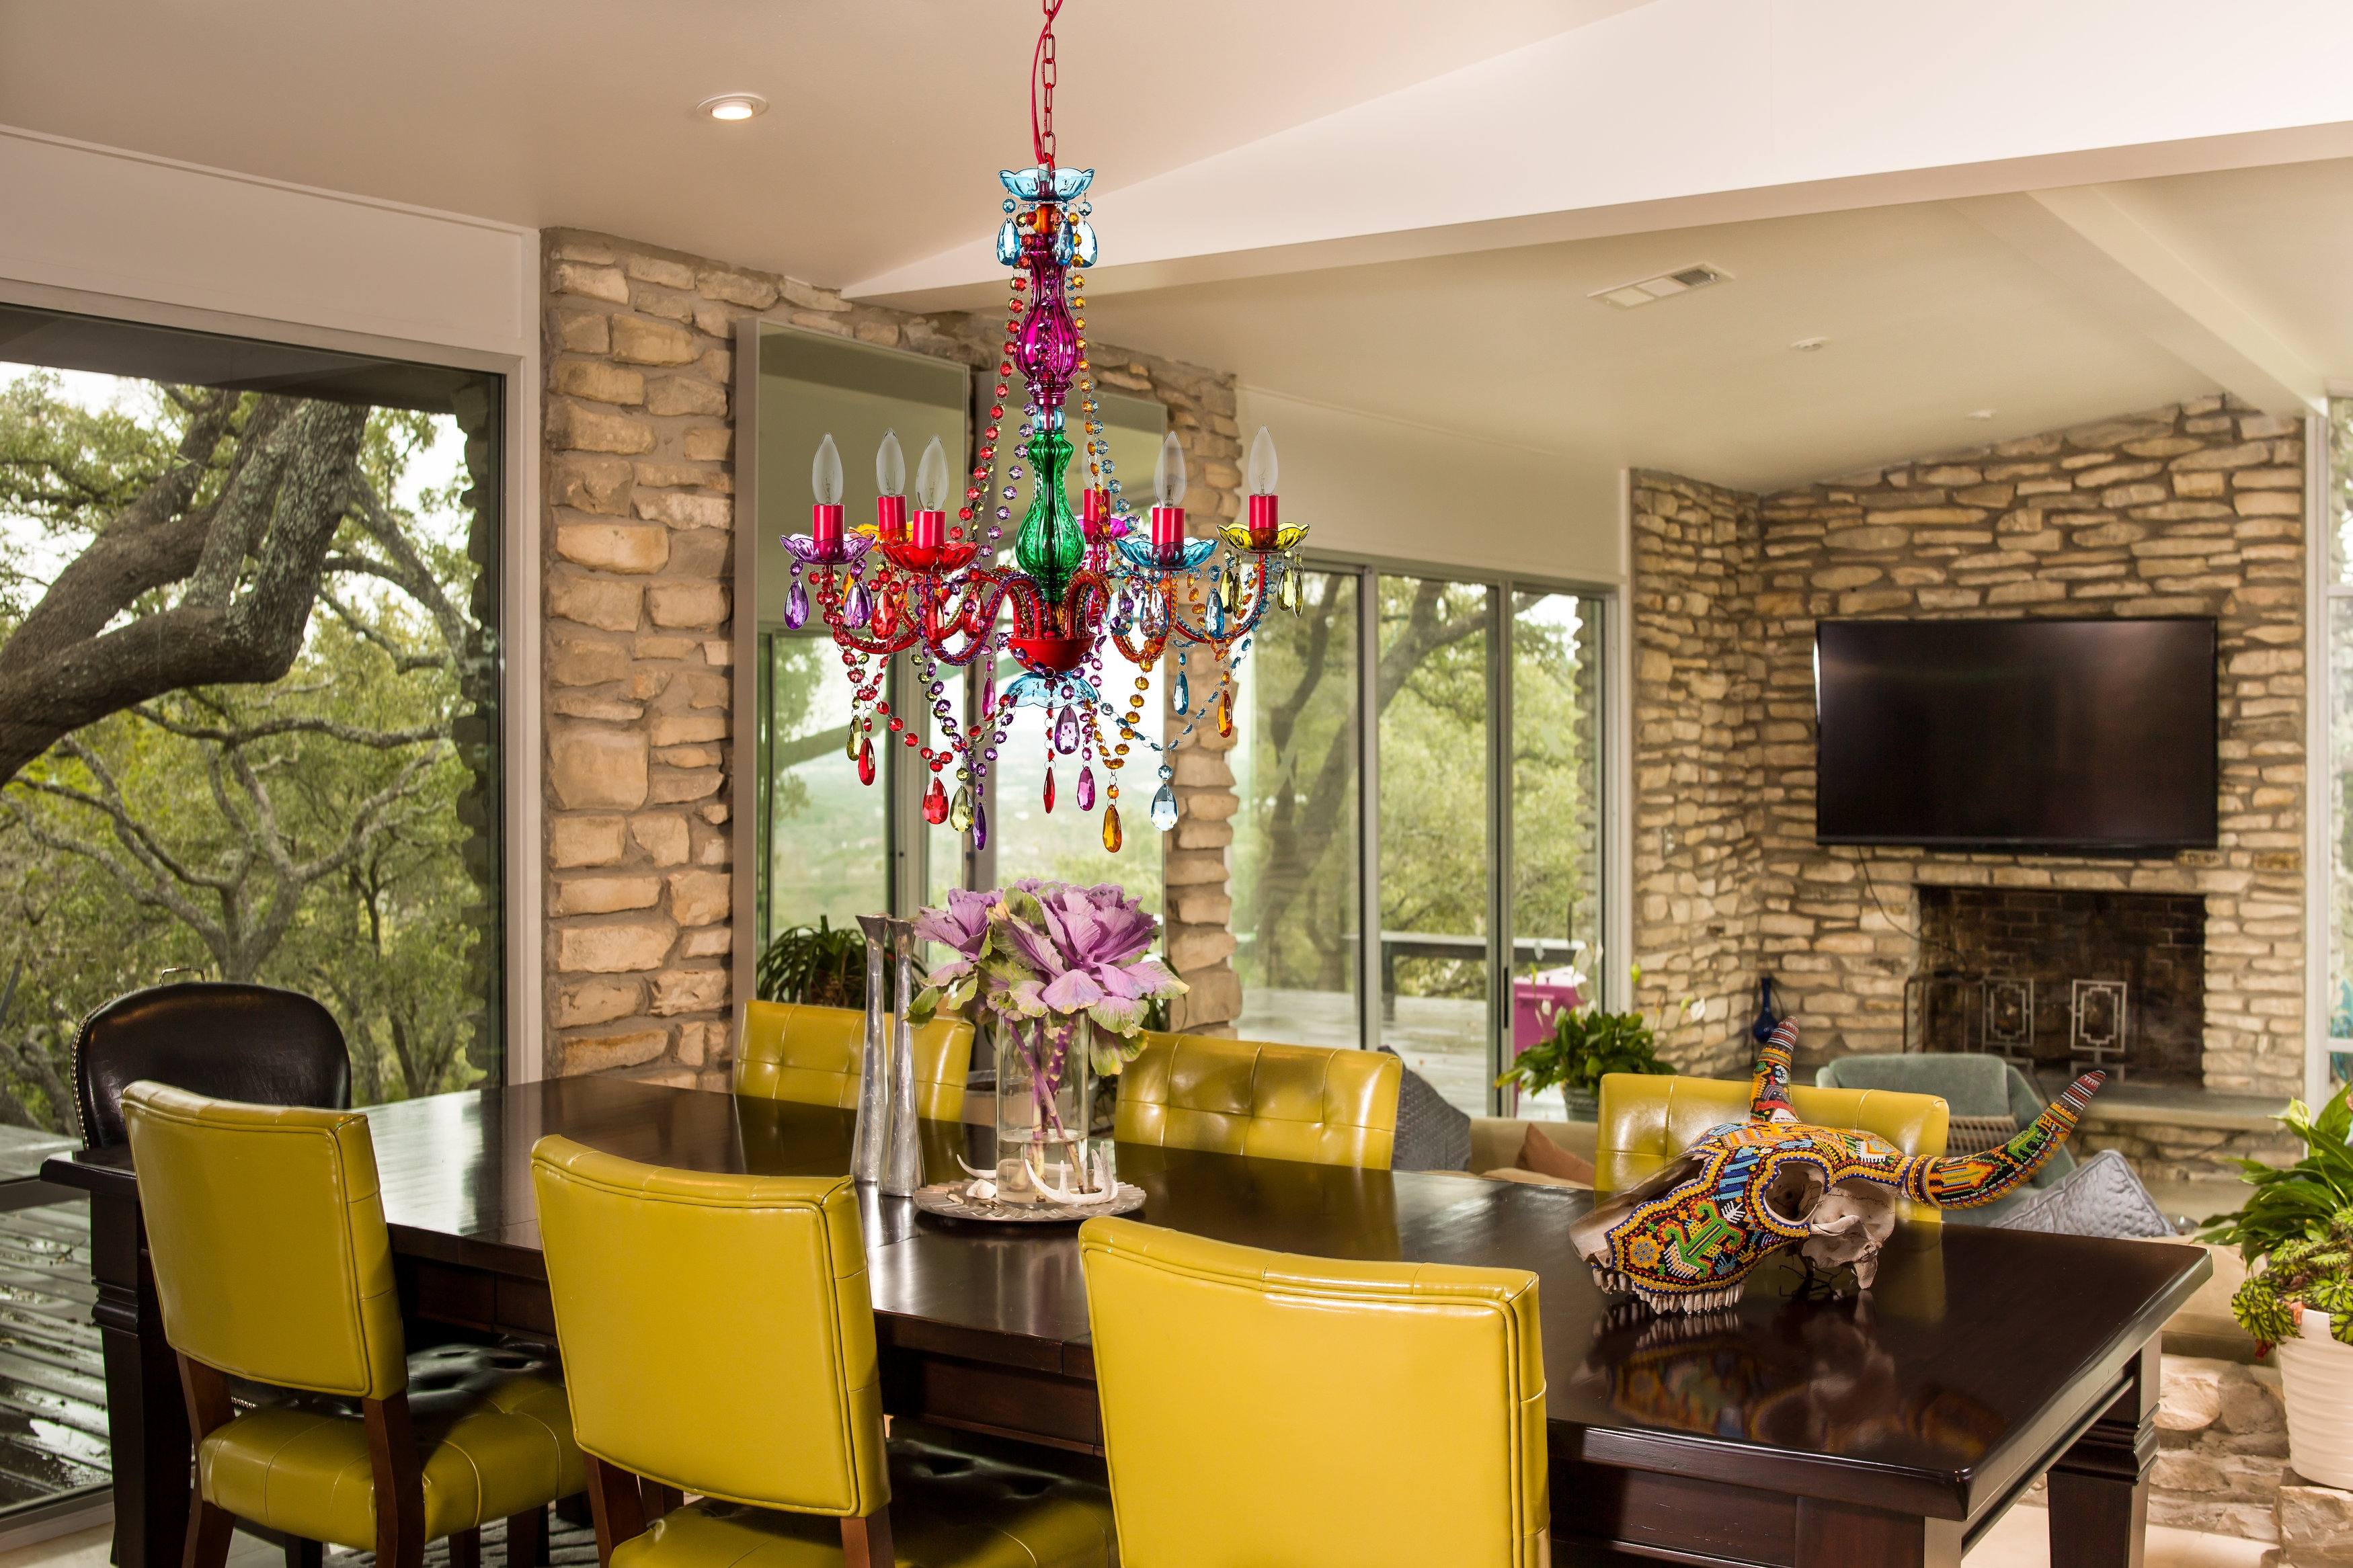 Gypsy Color Home Decor Accessories With Regard To Small Gypsy Chandeliers (Image 15 of 25)